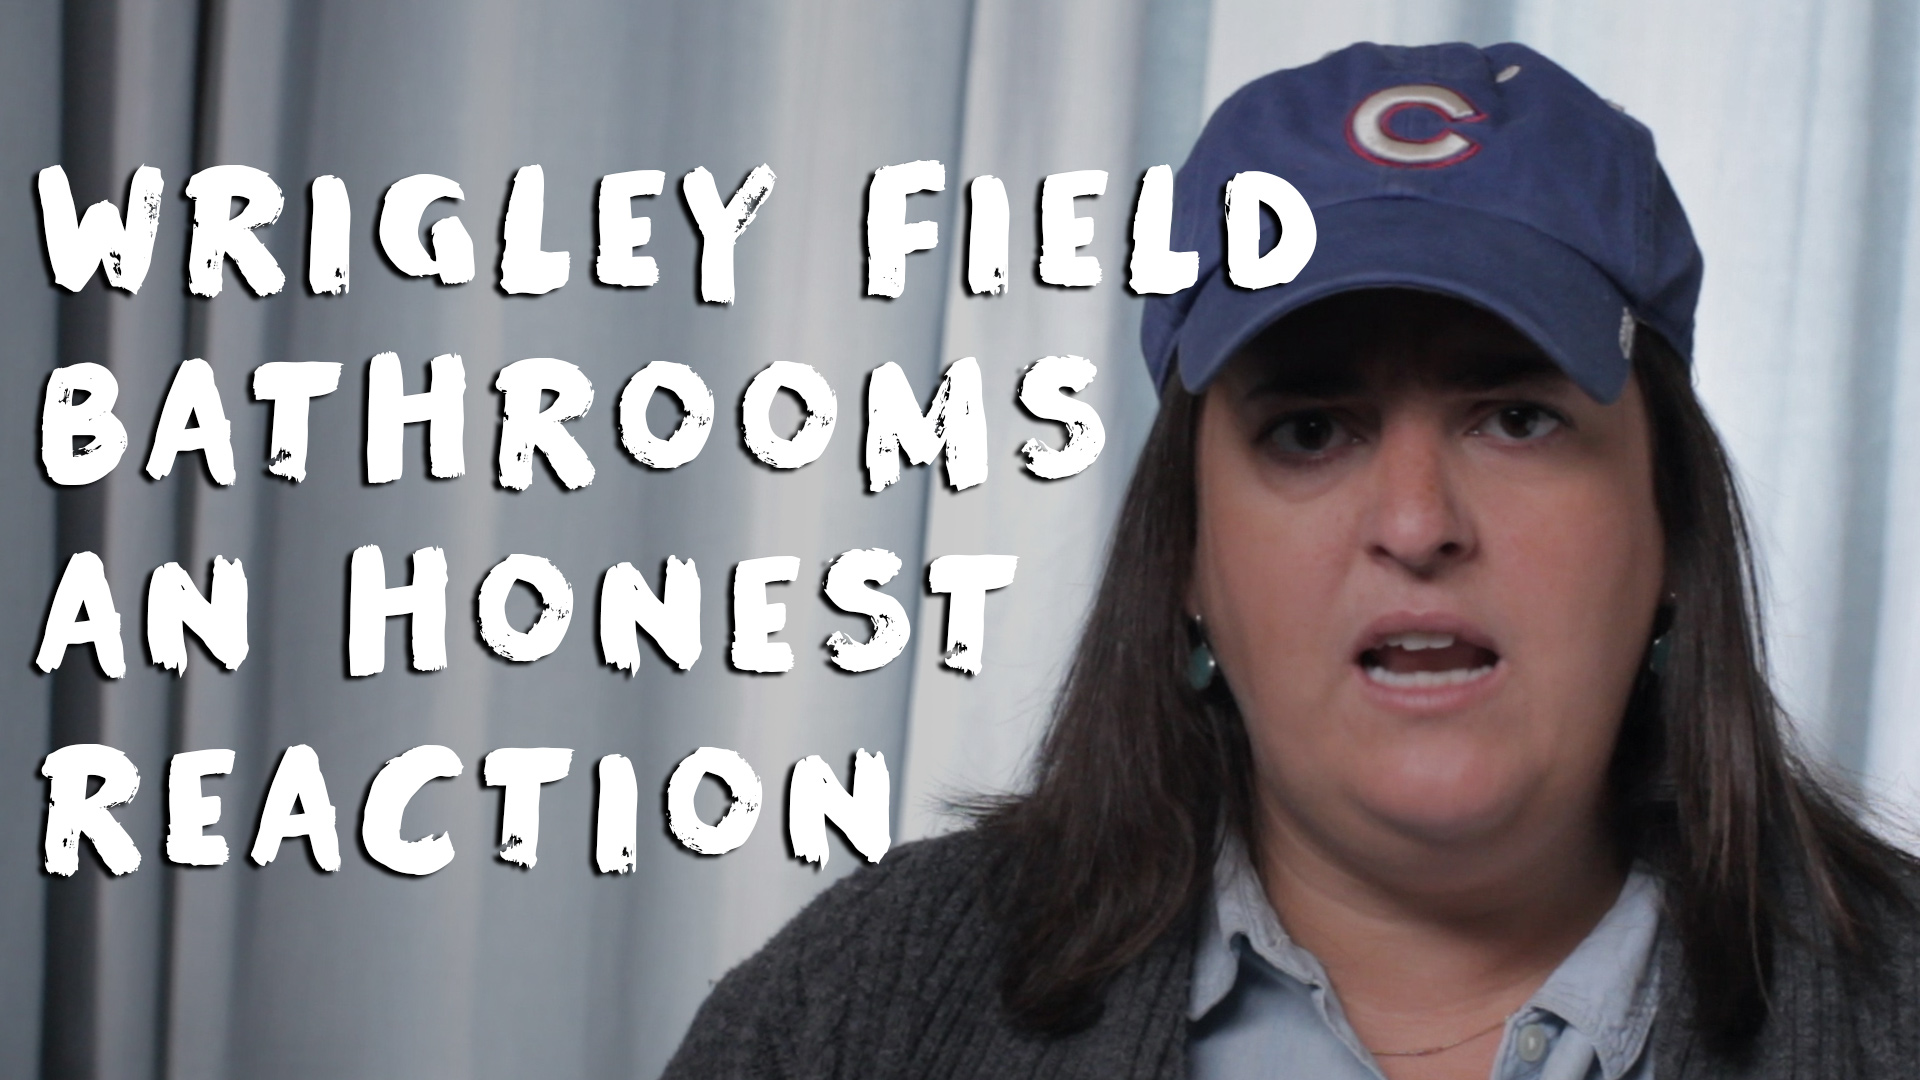 Wrigley Field Bathrooms An Honest Reaction